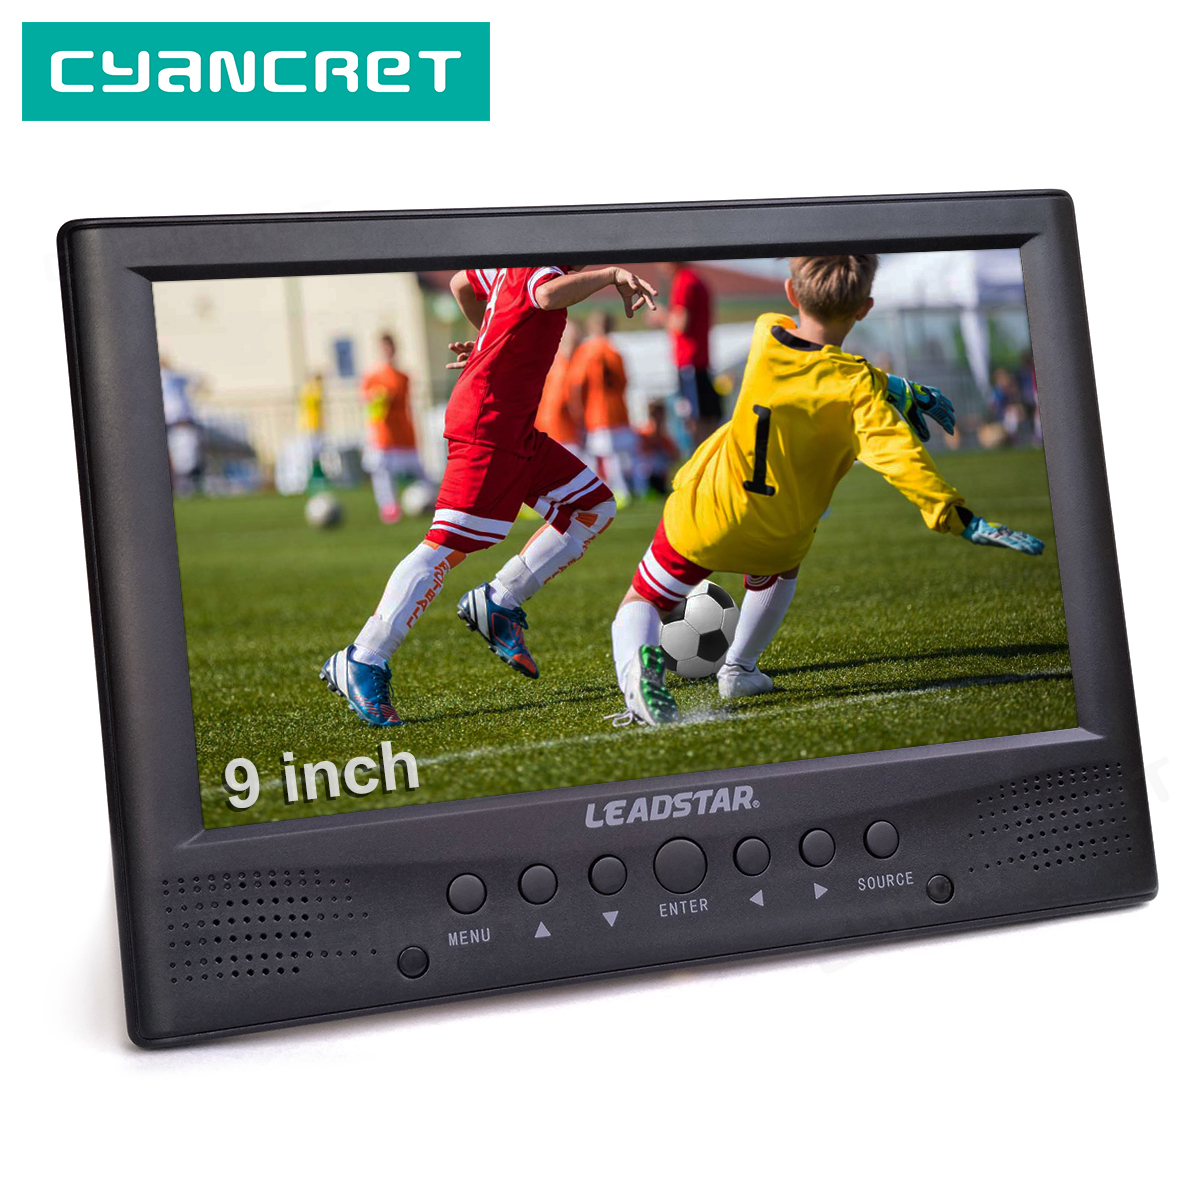 LEADSTAR DVB-T2 Portable TV ATSC Tdt 9 Inch Digital And Analog Television Front Speaker Mini Small Car TV Support H.265 AC3